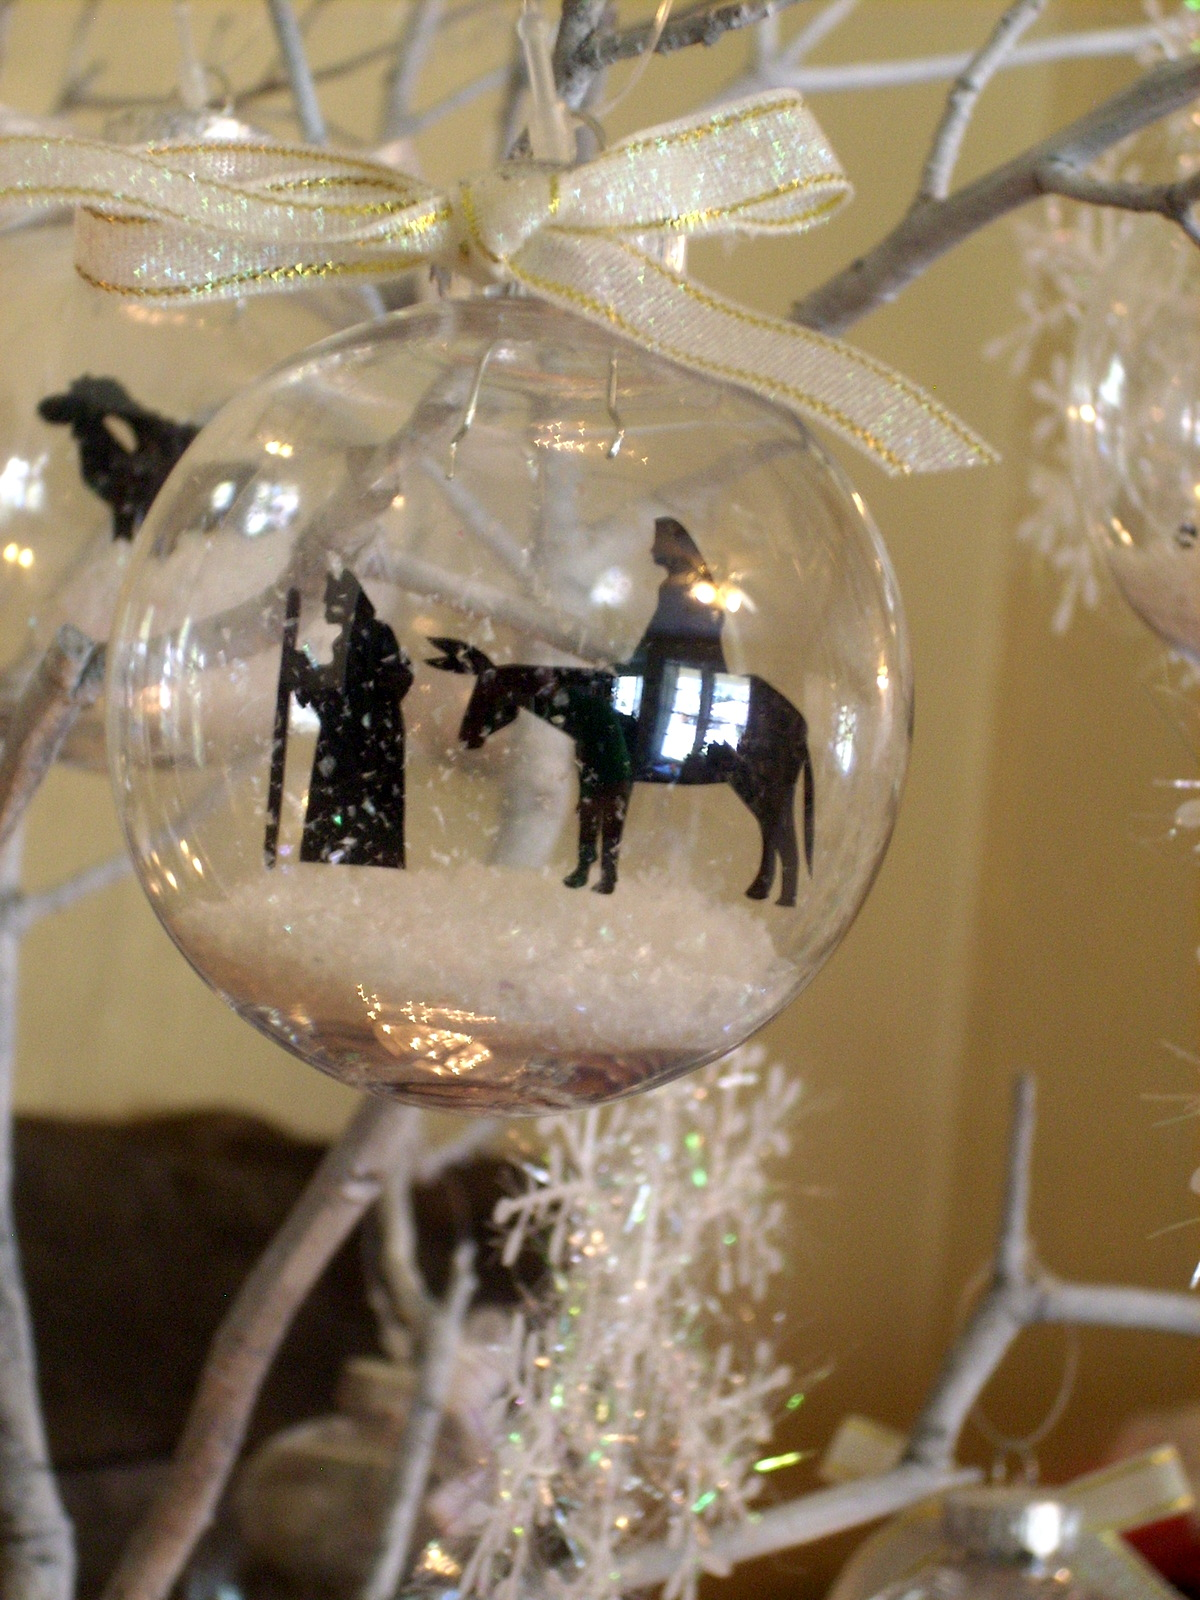 Design your own christmas ornaments - Design Your Own Christmas Ornaments 24